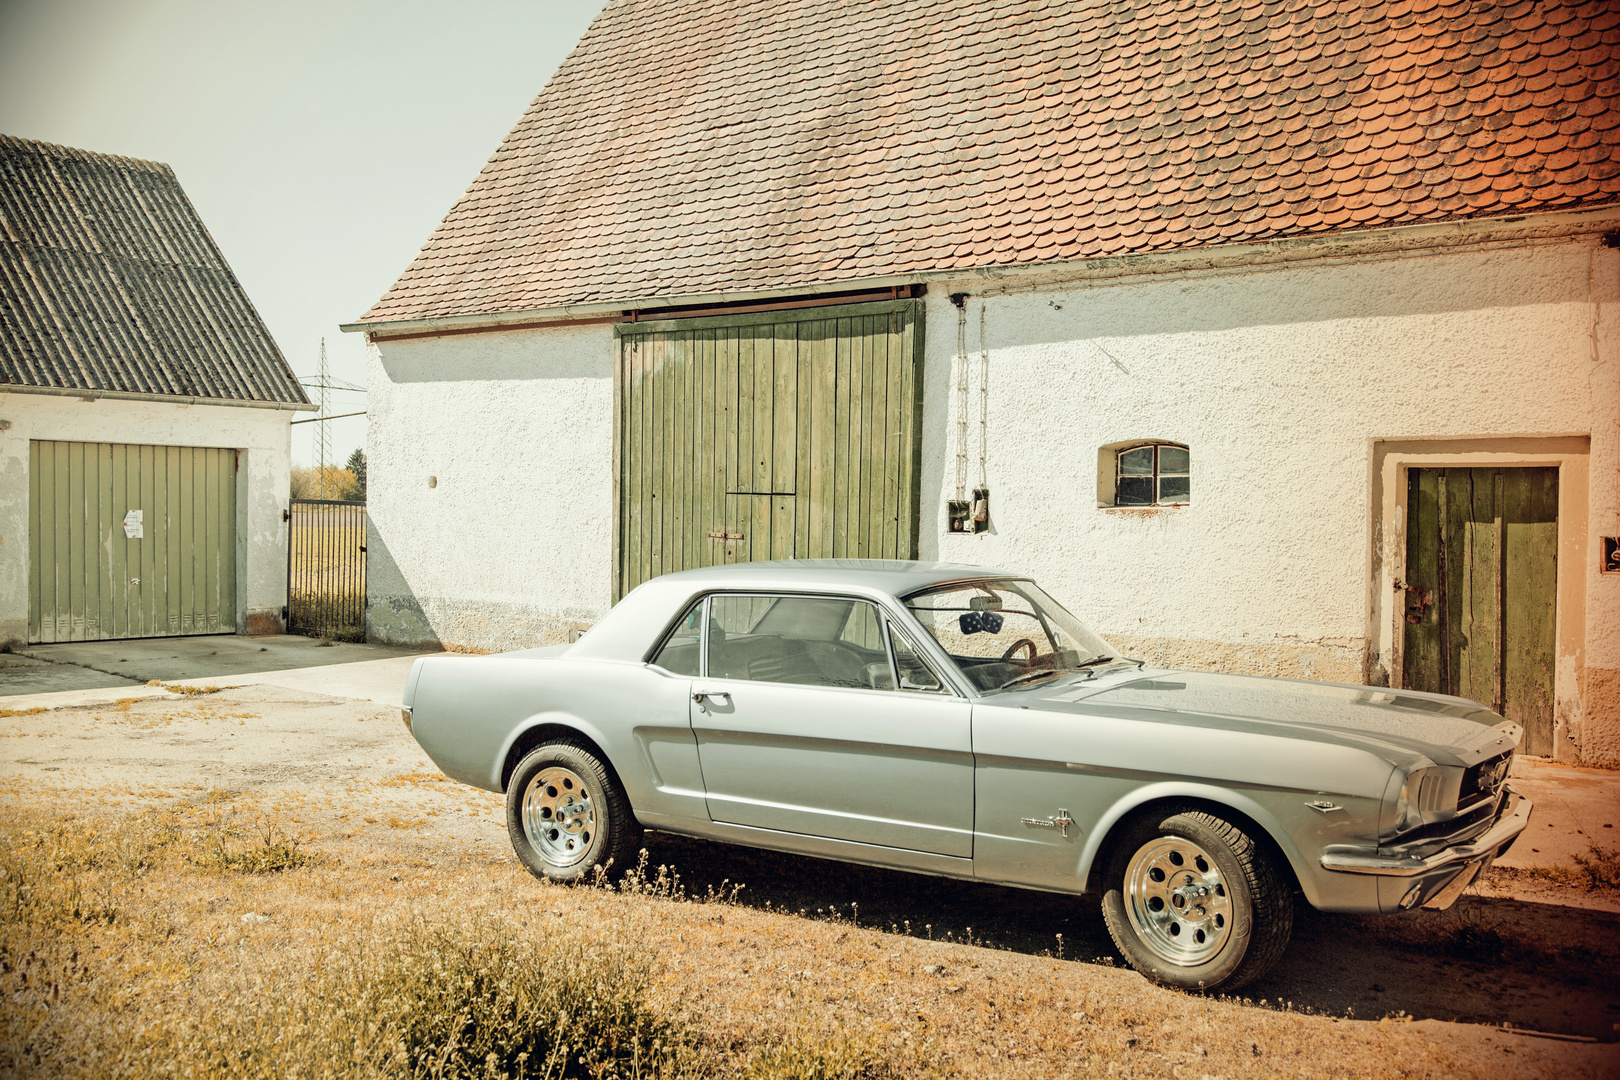 Ford Mustang - tolle Stimmung